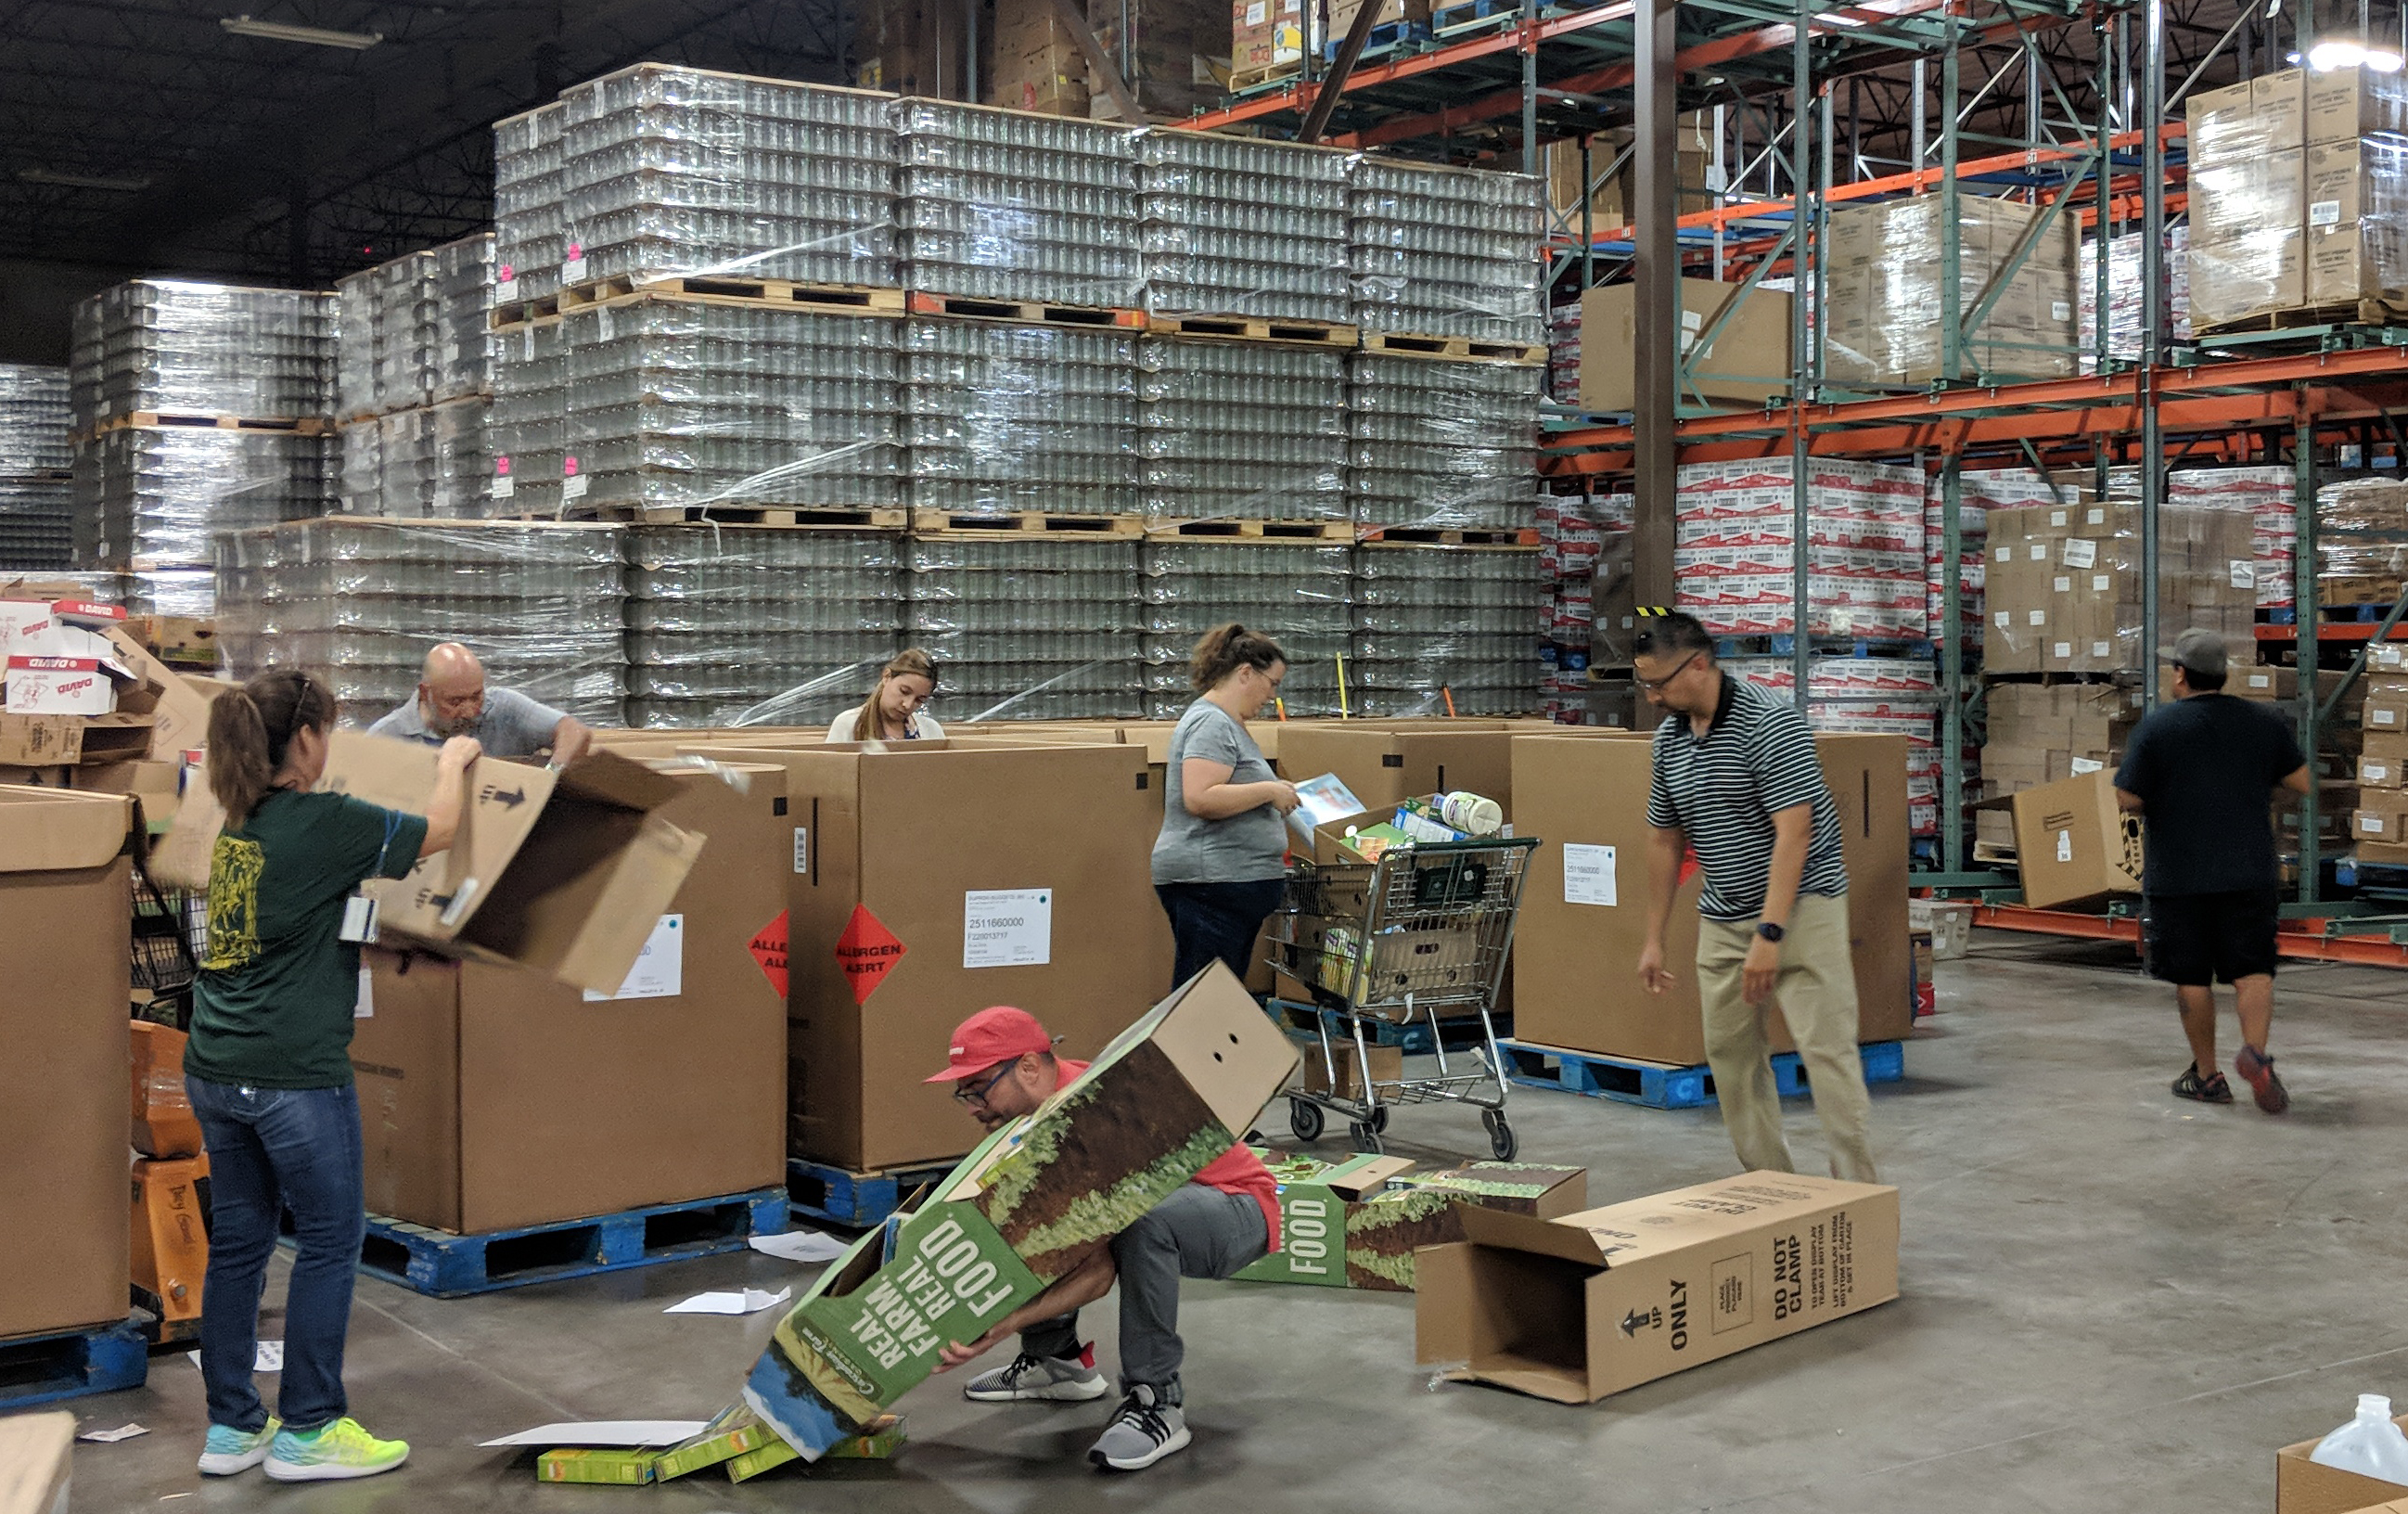 Employees sort through food donations to prepare them for distribution.